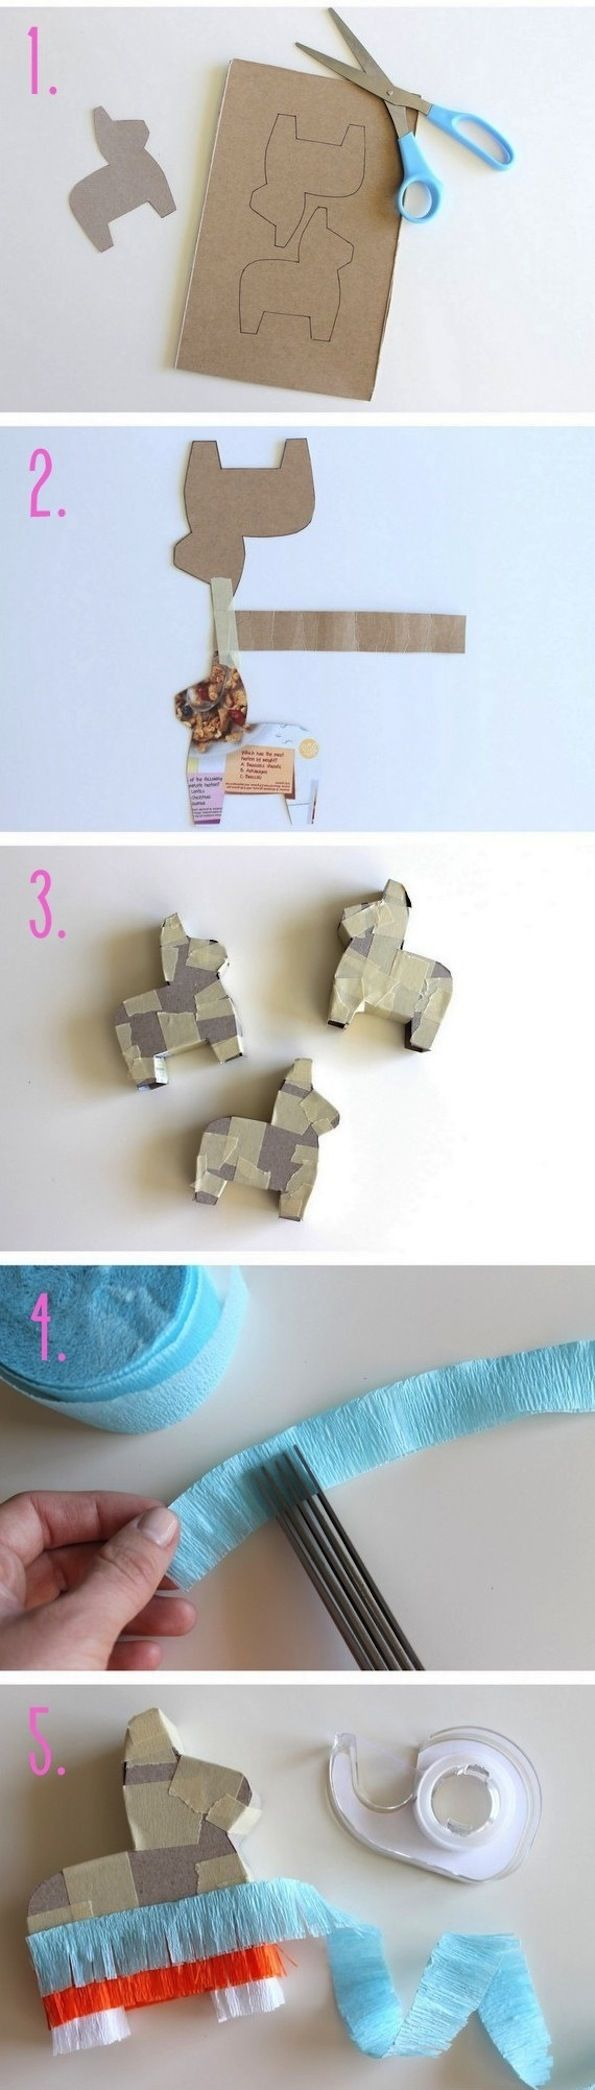 Cinco de Mayo: DIY Mini Piñatas out of a medium sized cereal box - cute and fun!